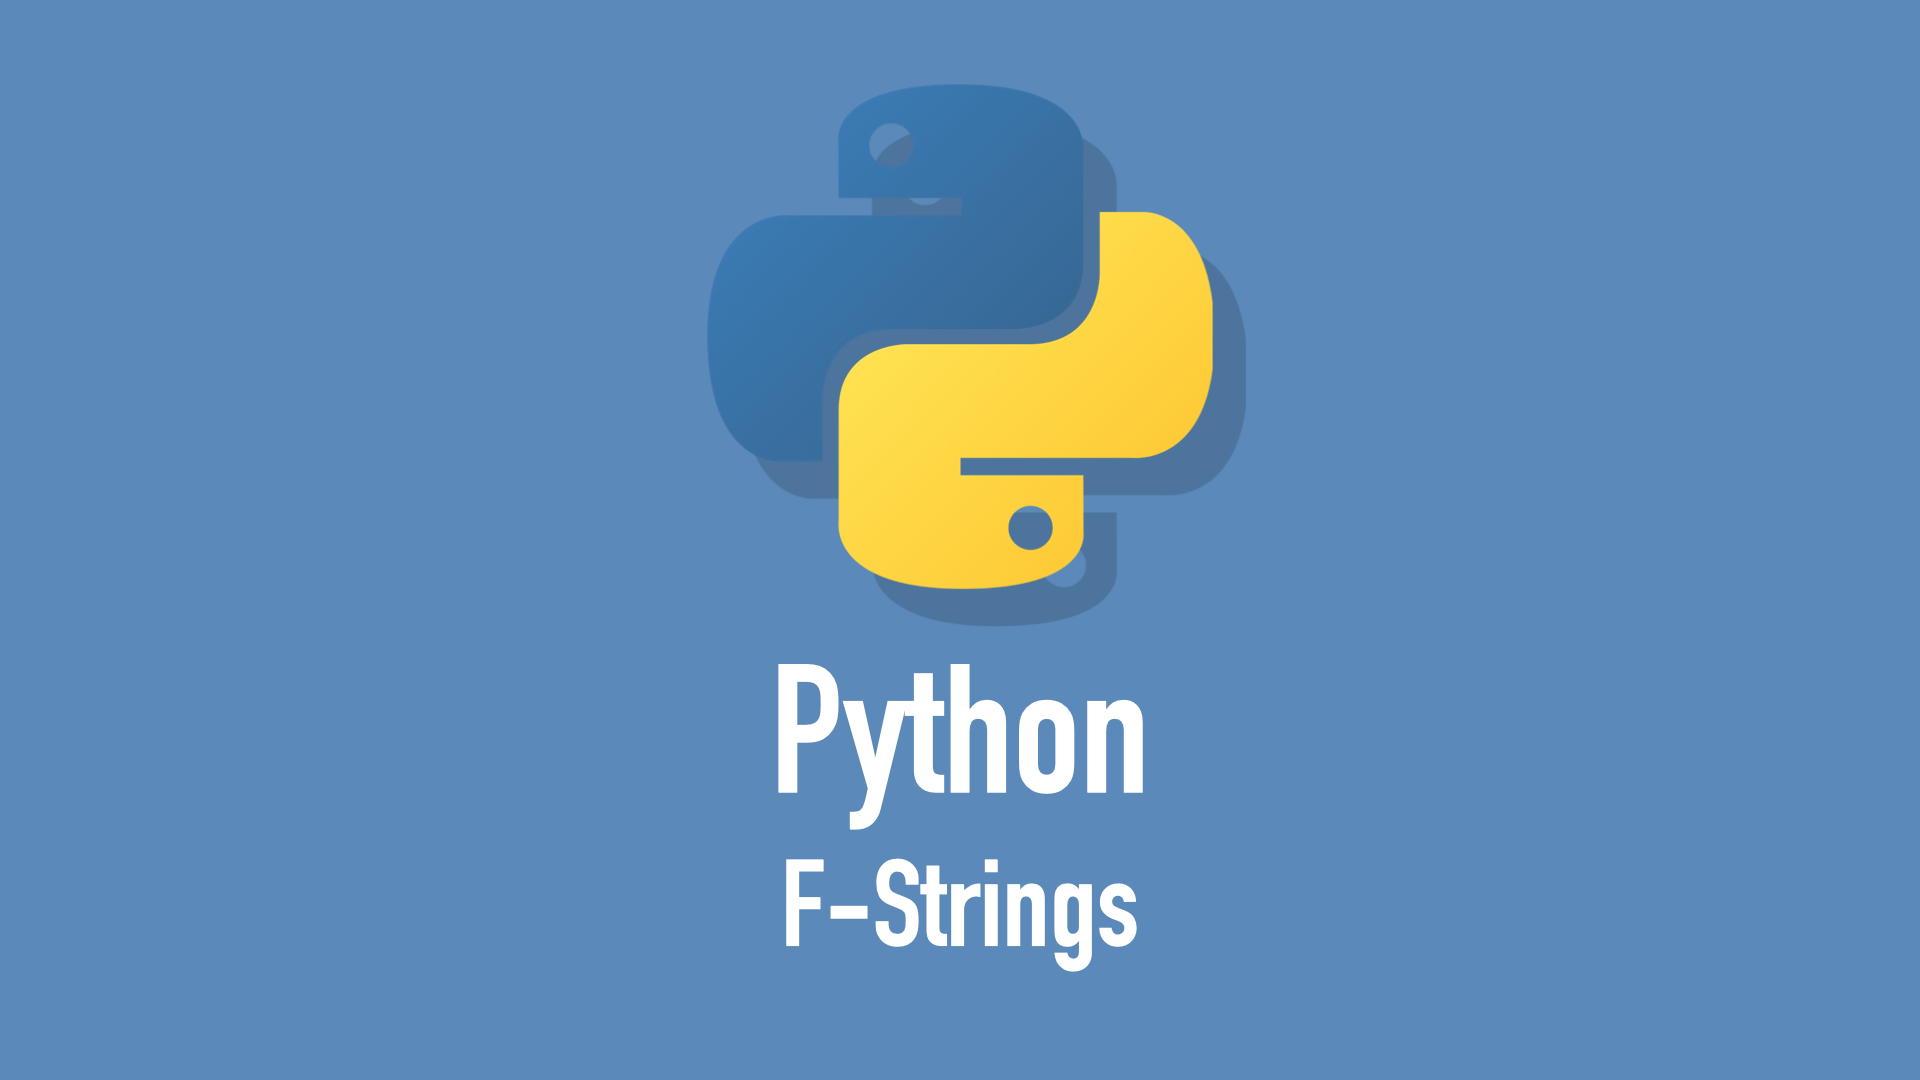 Formatted string in Python